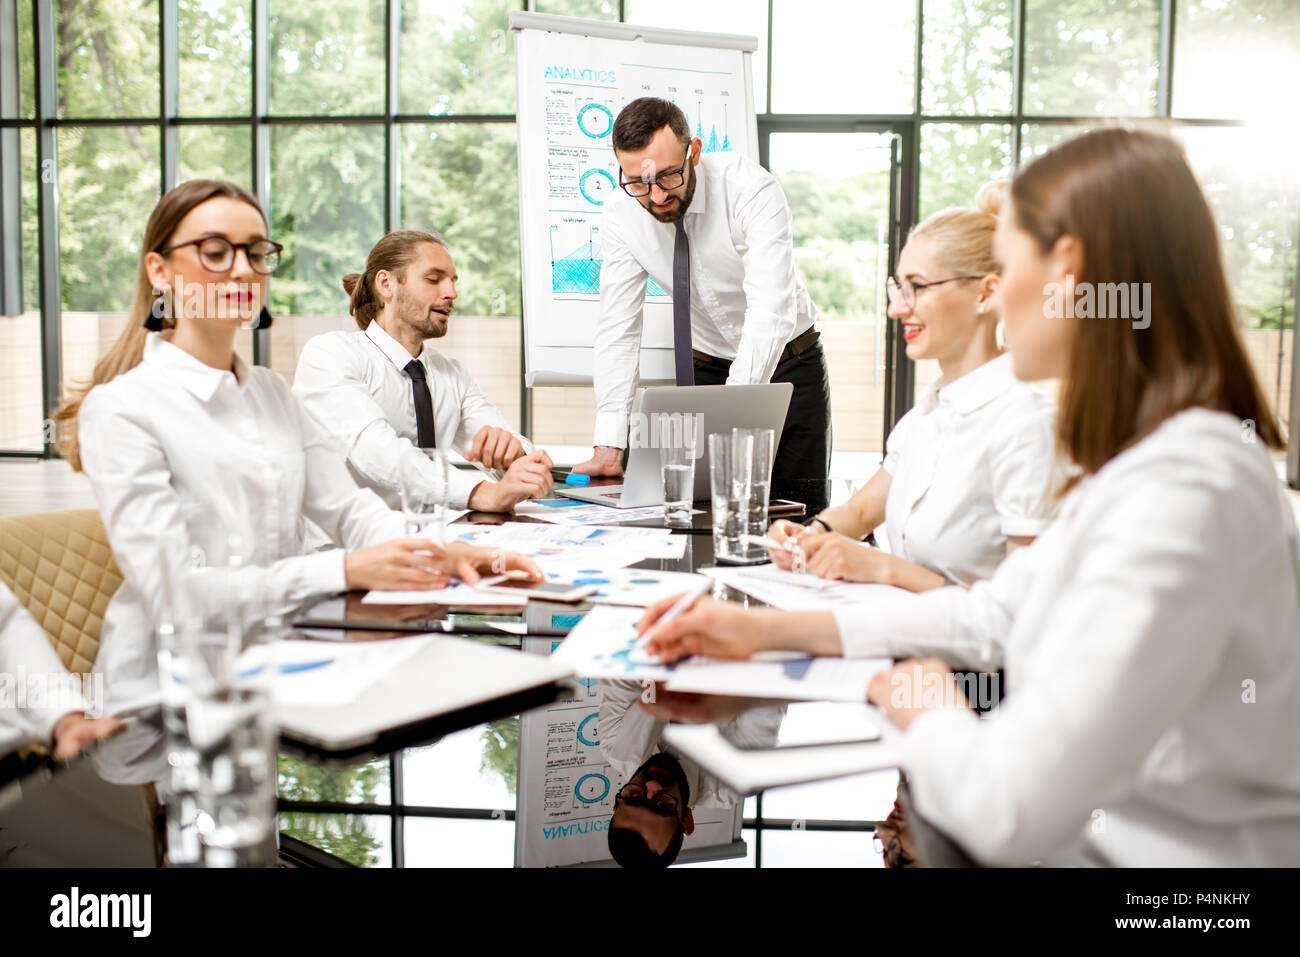 Business people during a conference indoors - Stock Image